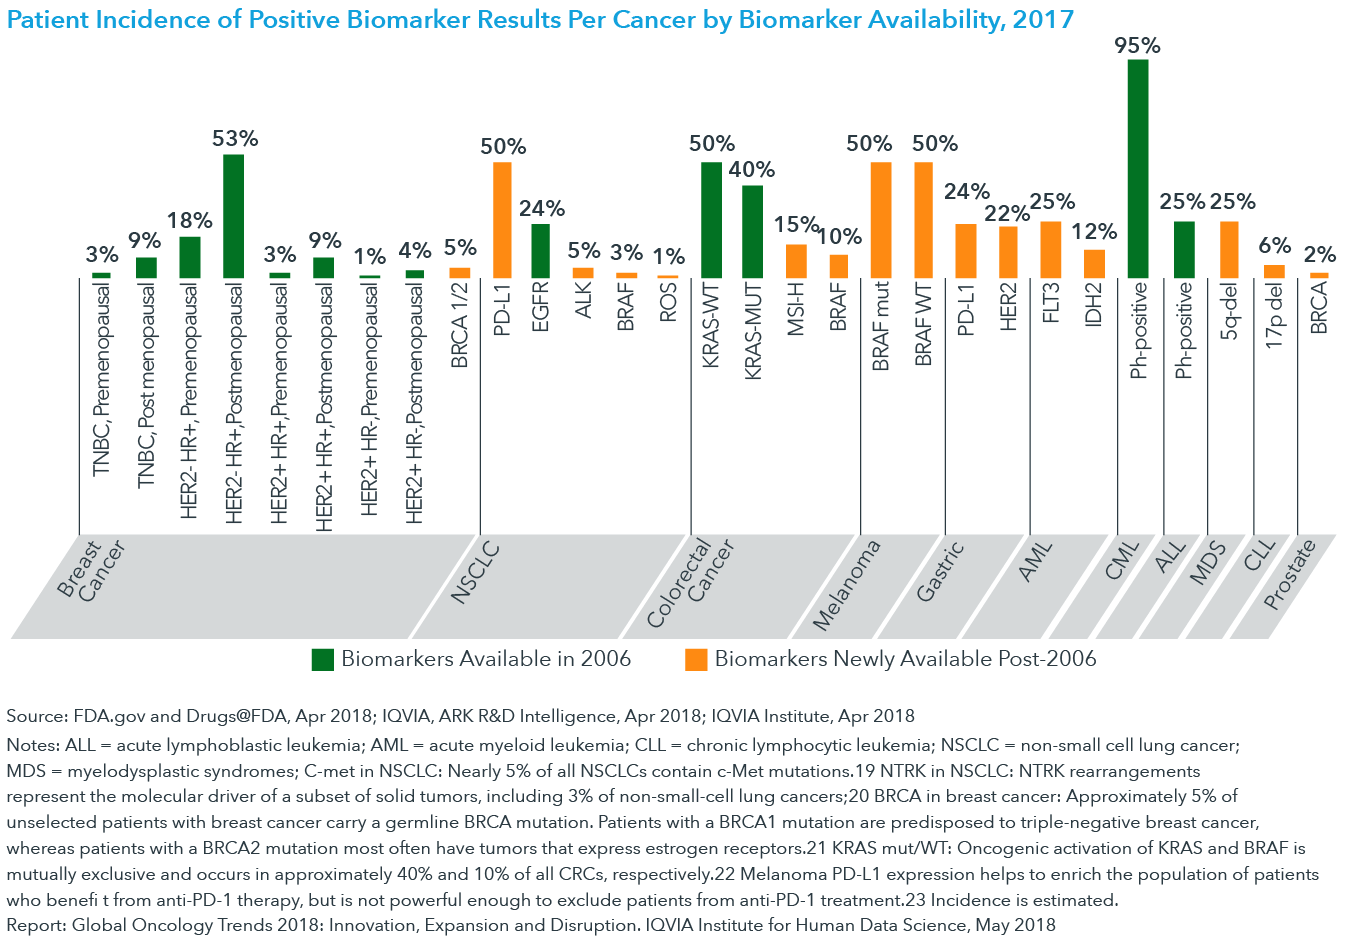 Chart 7: Patient Incidence of Positive Biomarker Results Per Cancer by Biomarker Availability, 2017